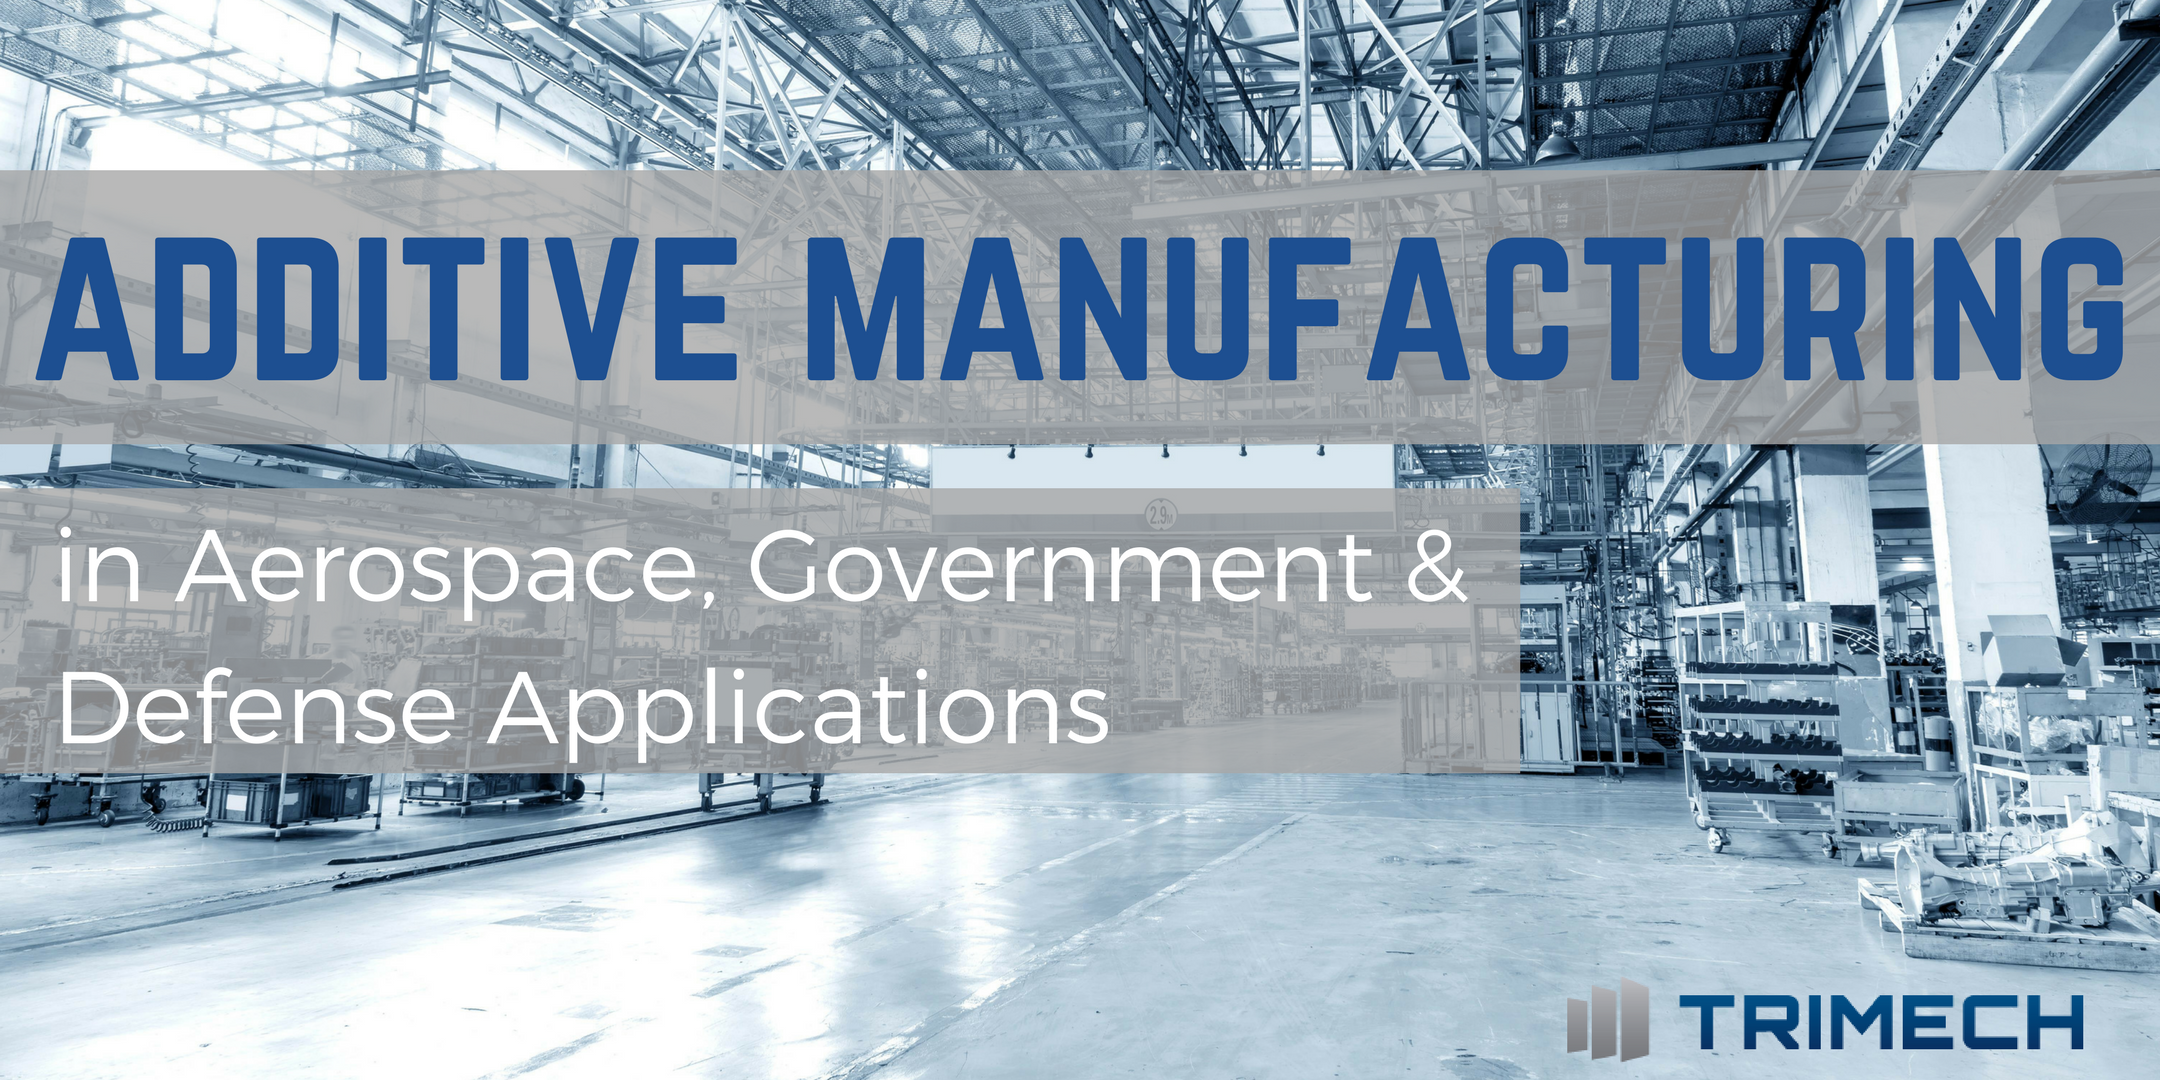 Additive Manufacturing in Aerospace, Governme